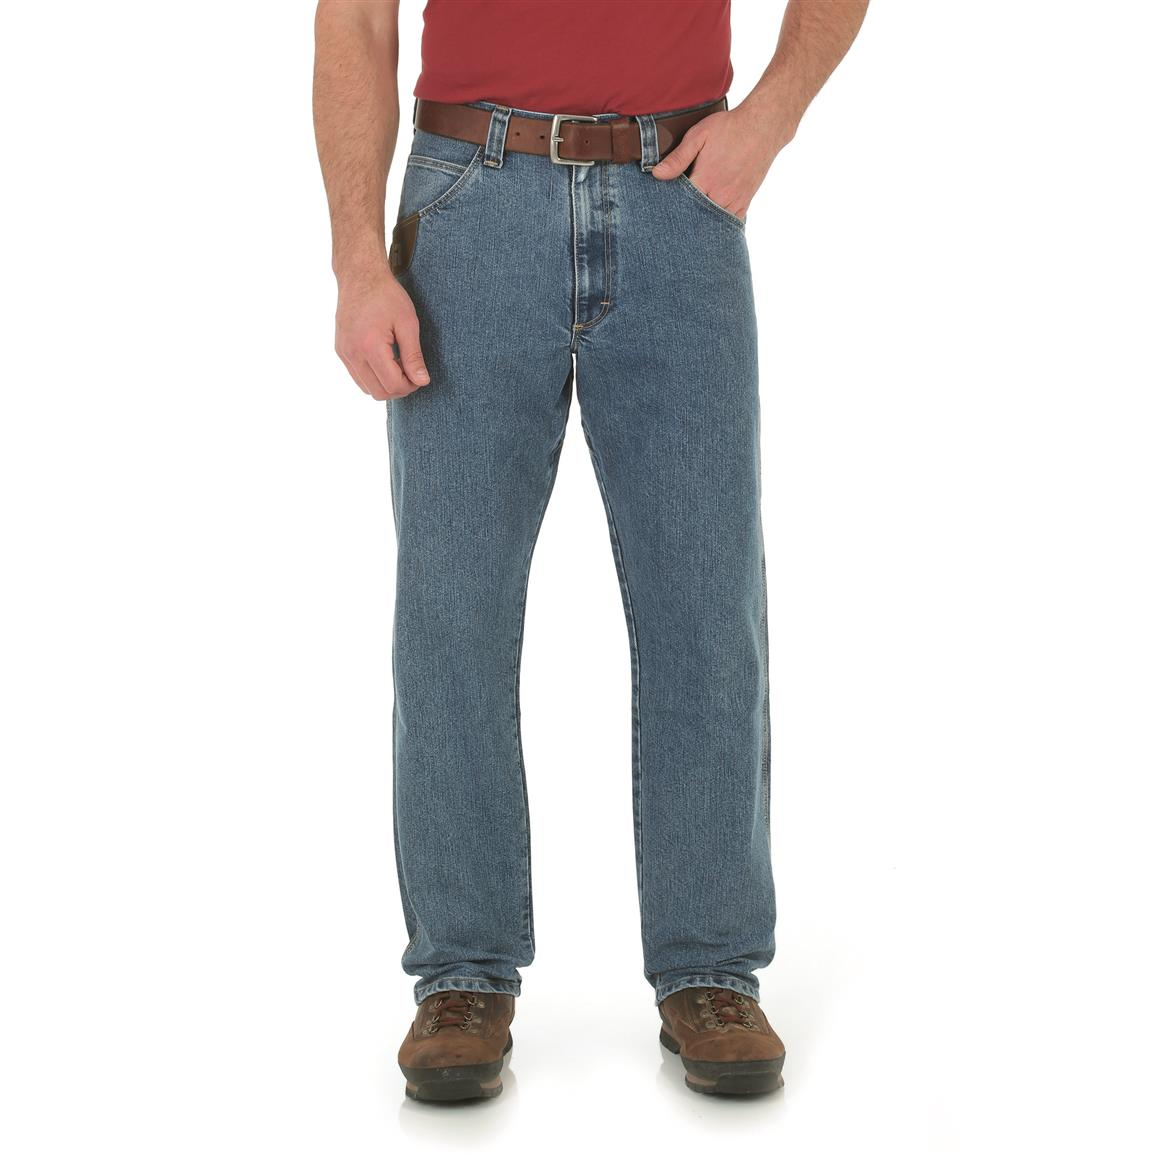 Wrangler RIGGS Workwear Men's Cool Vantage Carpenter Jeans, Light Stone